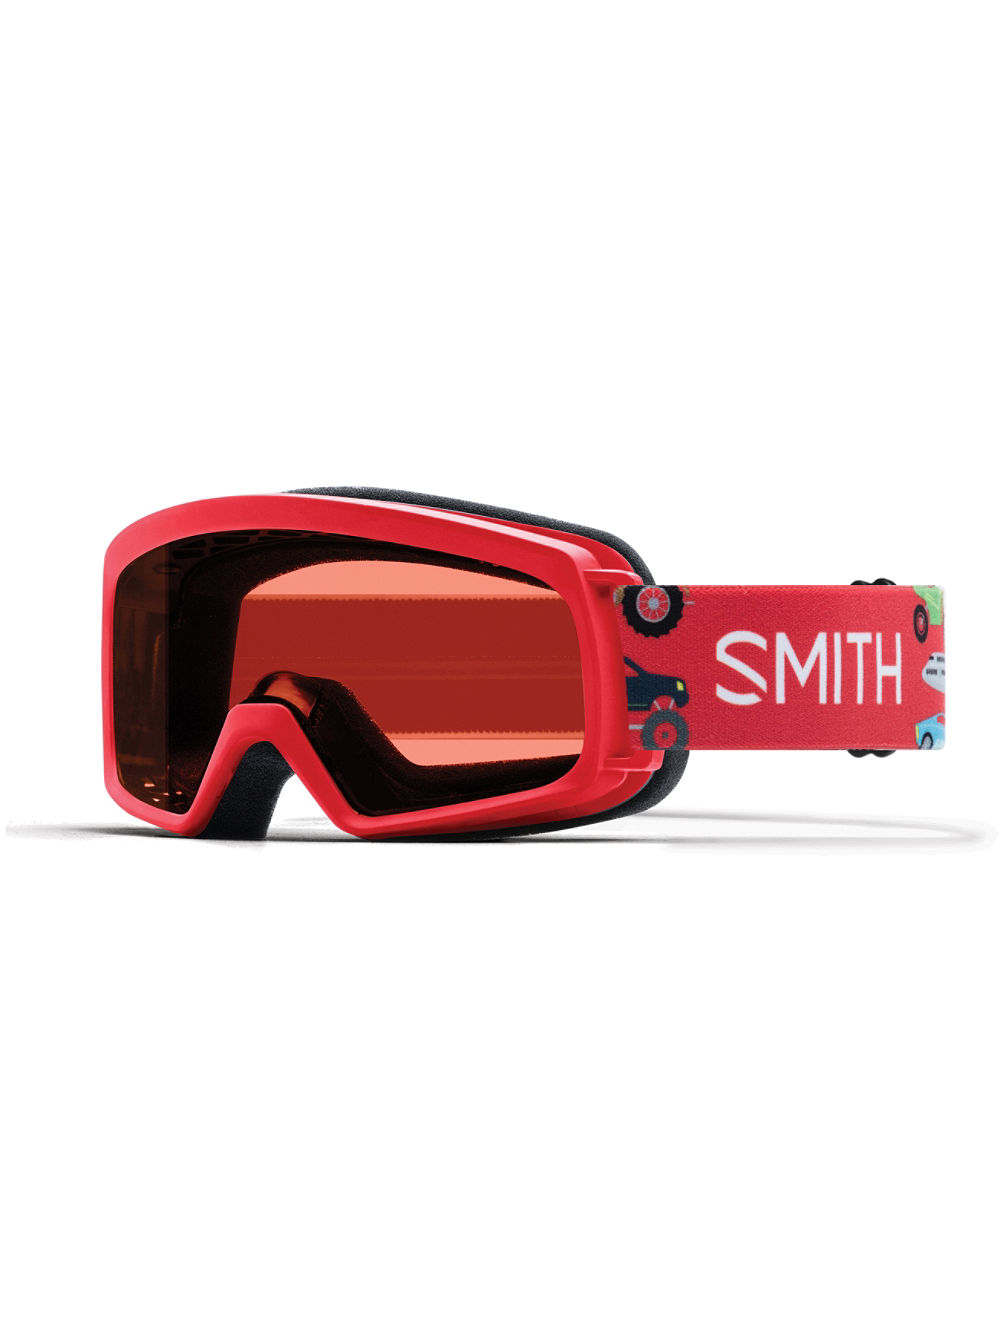 Rascal Fire Transportation Youth Goggle